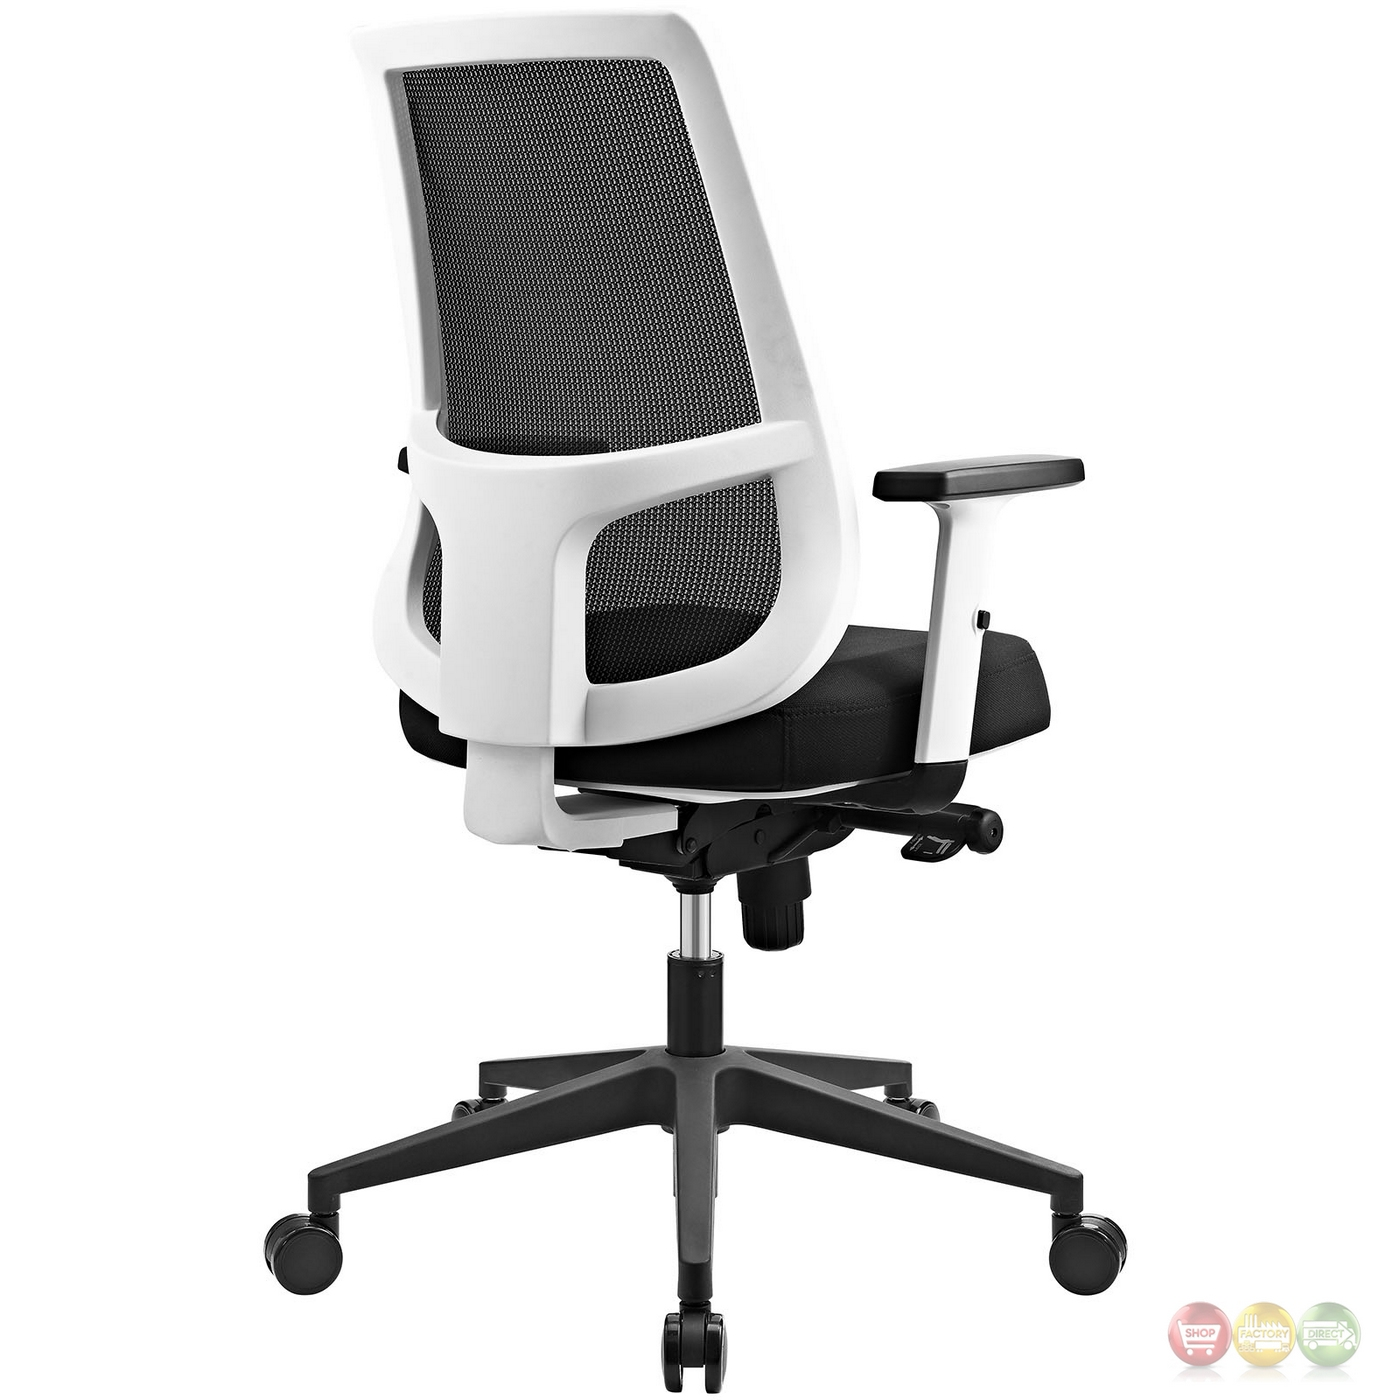 Pump Ergonomic Mesh Back Office Chair W White Frame